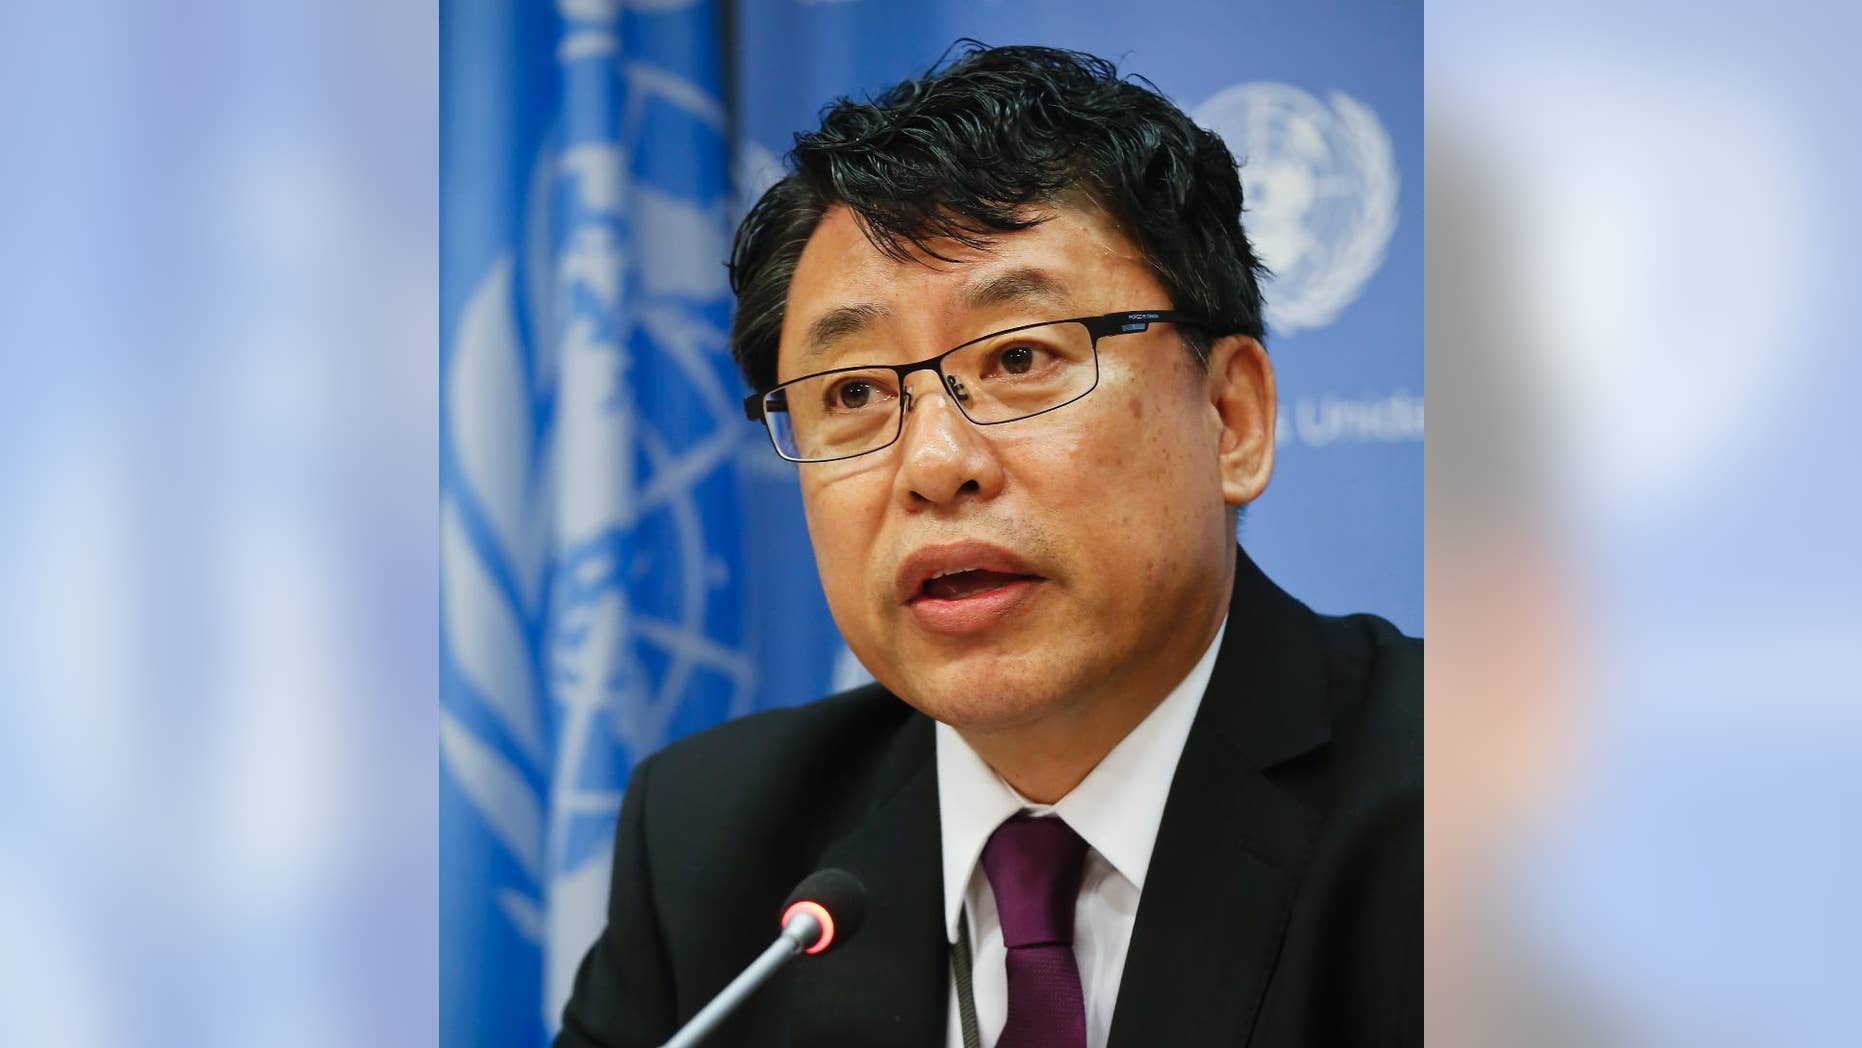 North Korea's Deputy Ambassador to the United Nations, Kim In Ryong, speaks during a news briefing on Monday, April 17, 2017, at U.N. headquarters. (AP Photo/Bebeto Matthews)